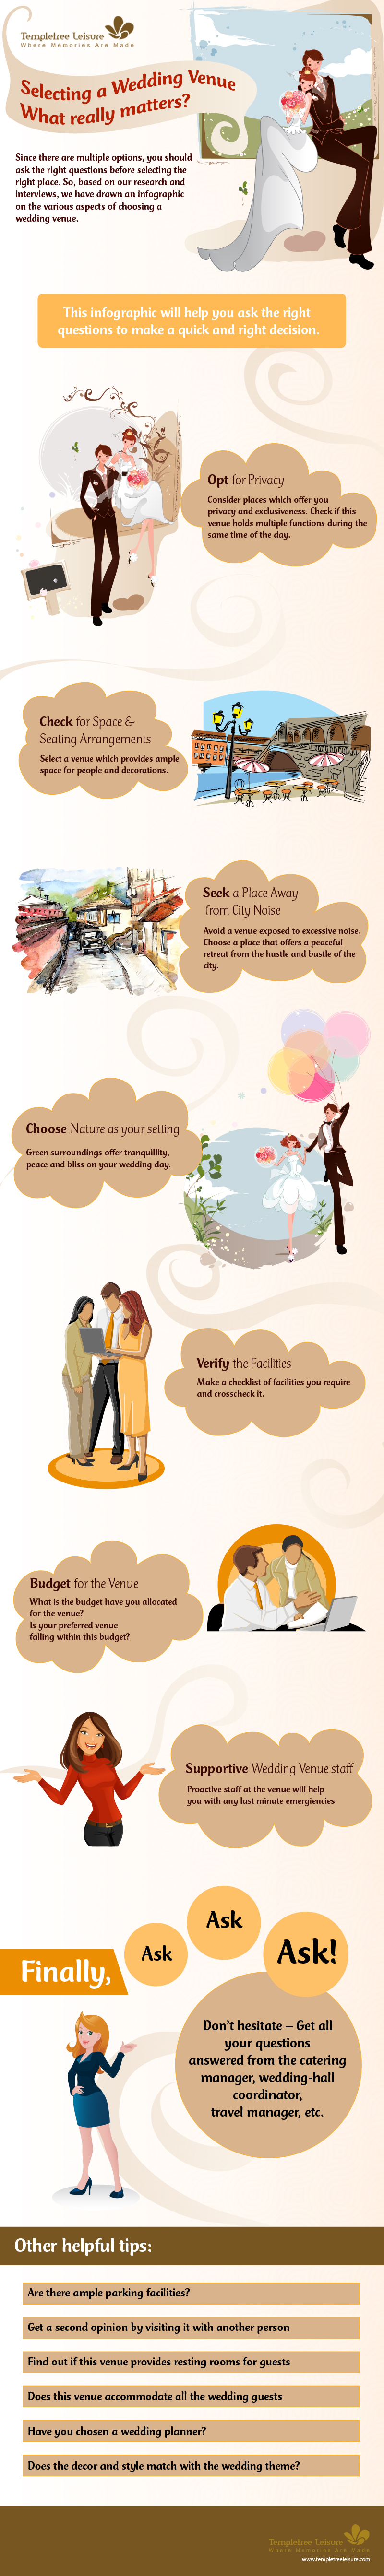 tips for selecting a wedding venue templetree-infographic